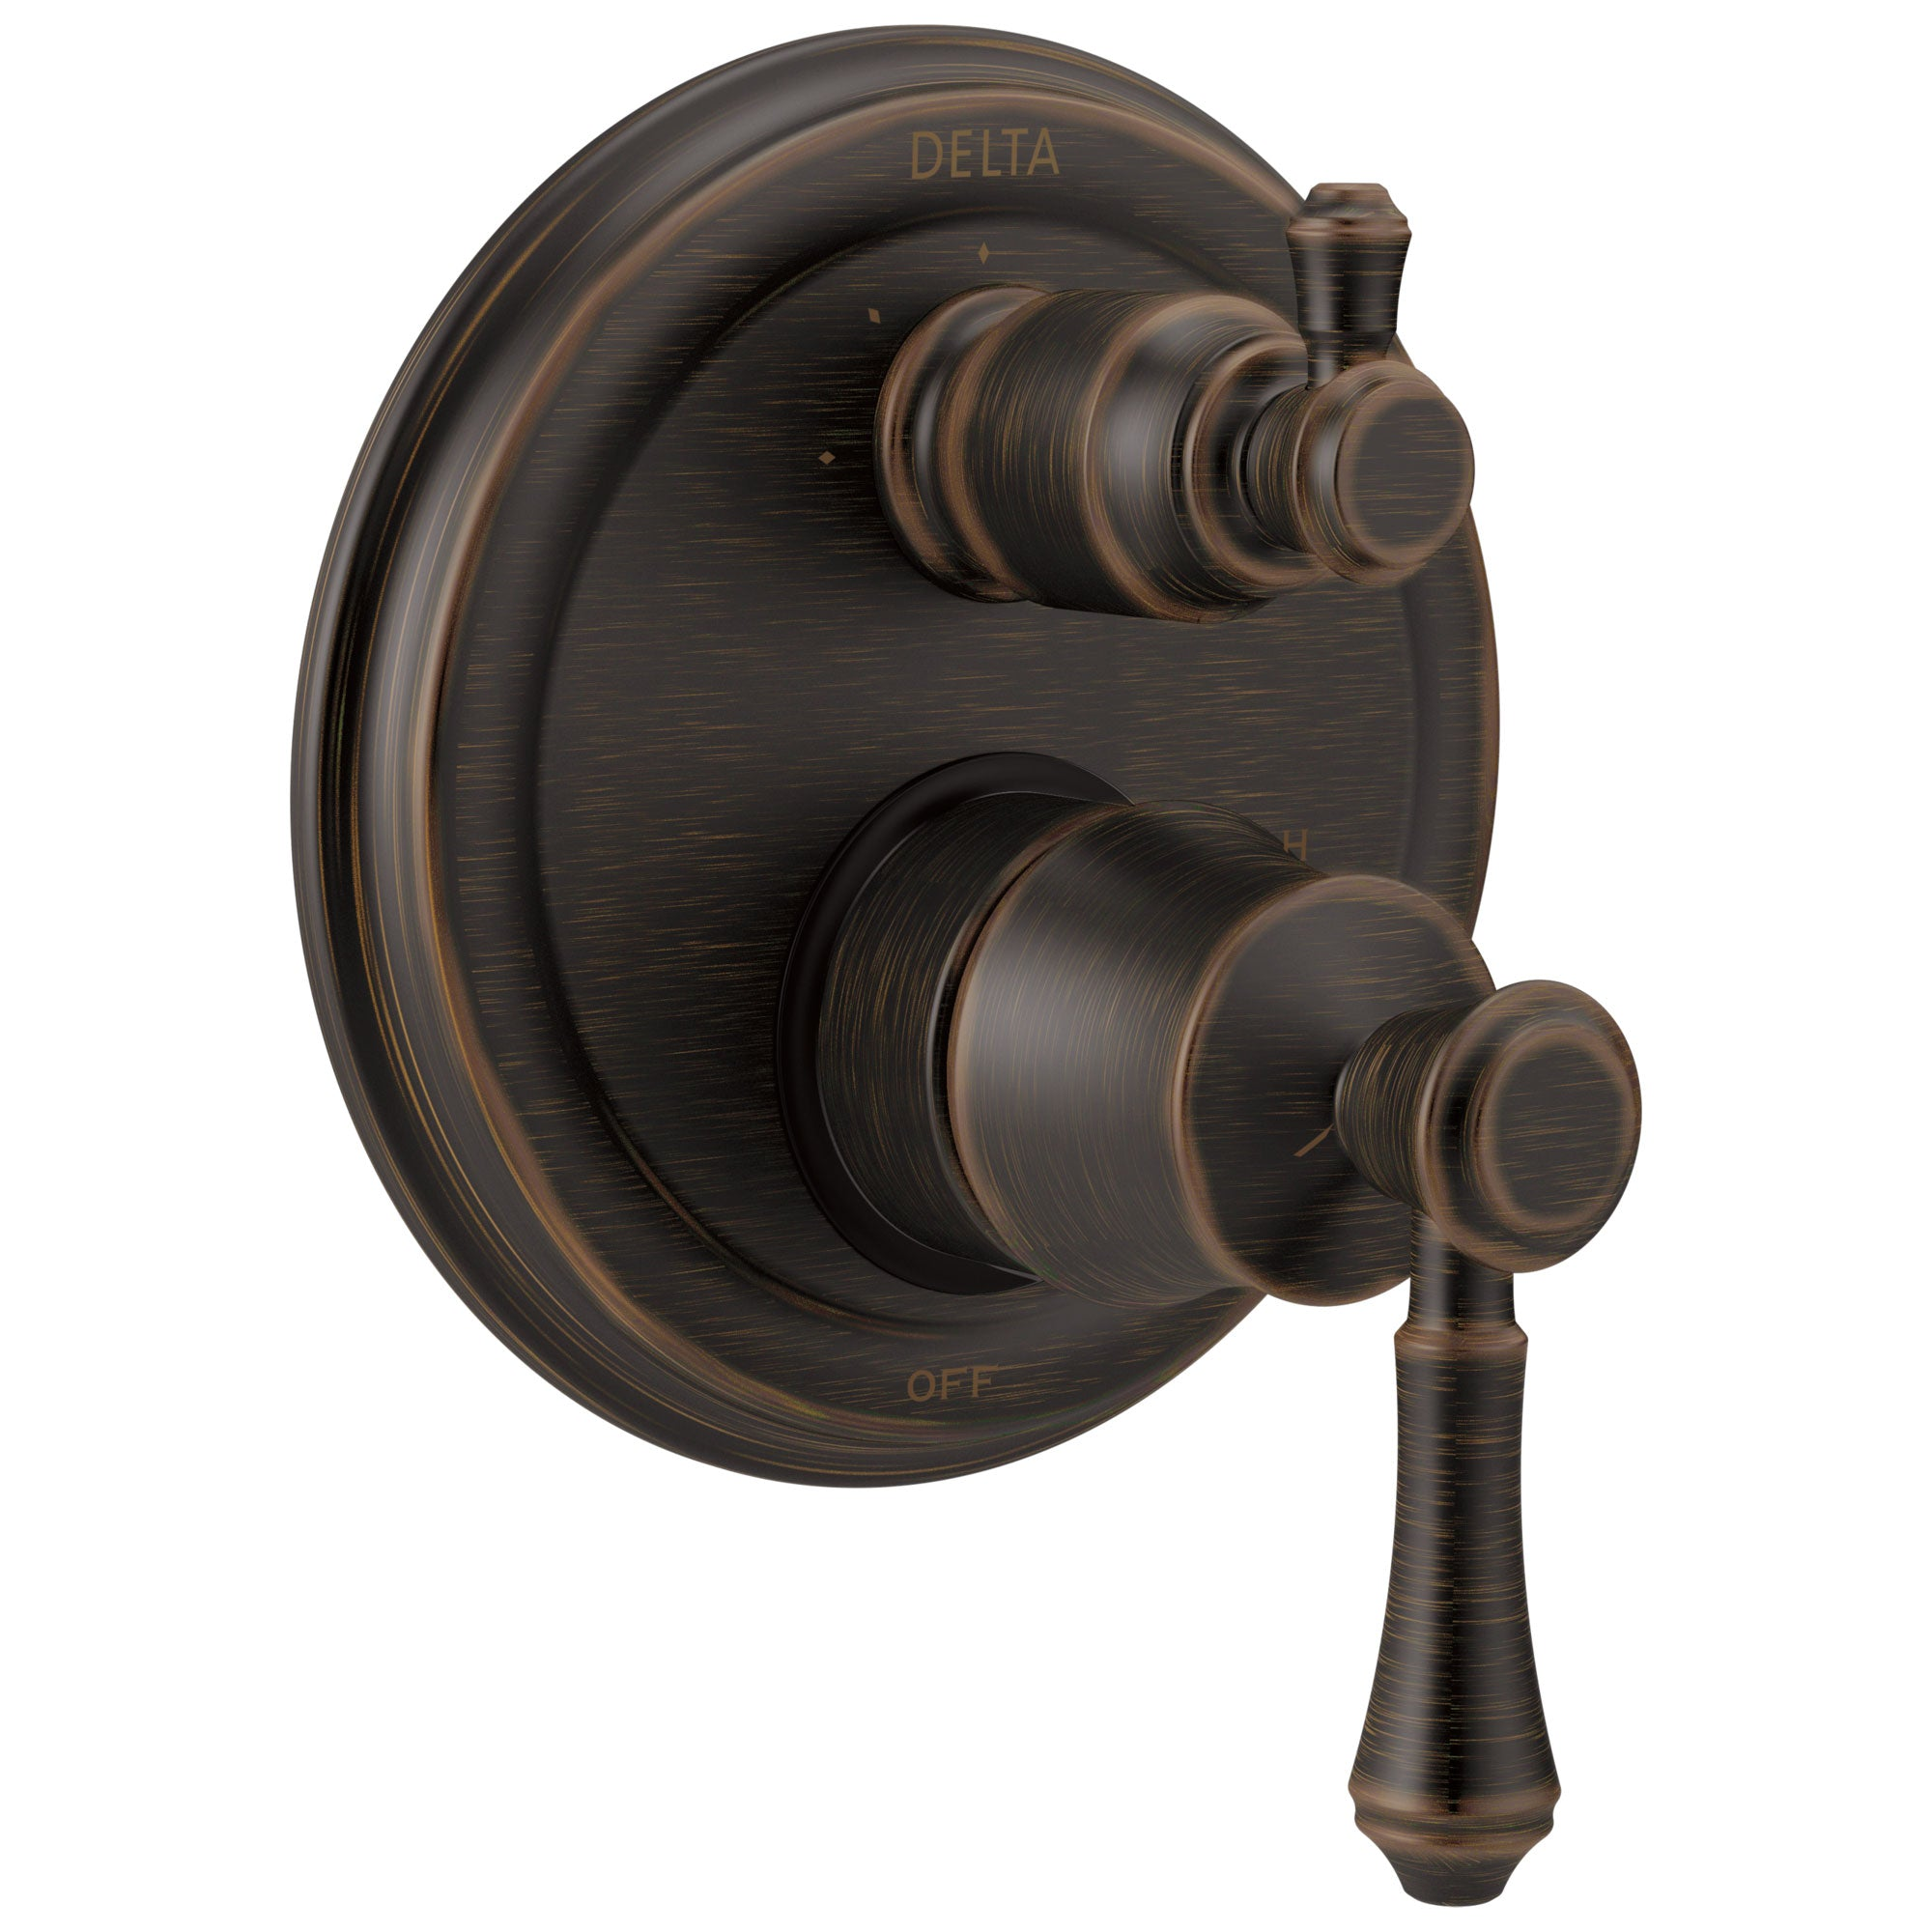 Delta Cassidy Collection Venetian Bronze Shower Faucet Valve Trim Control Handle with 3-Setting Integrated Diverter (Requires Valve) DT24897RB